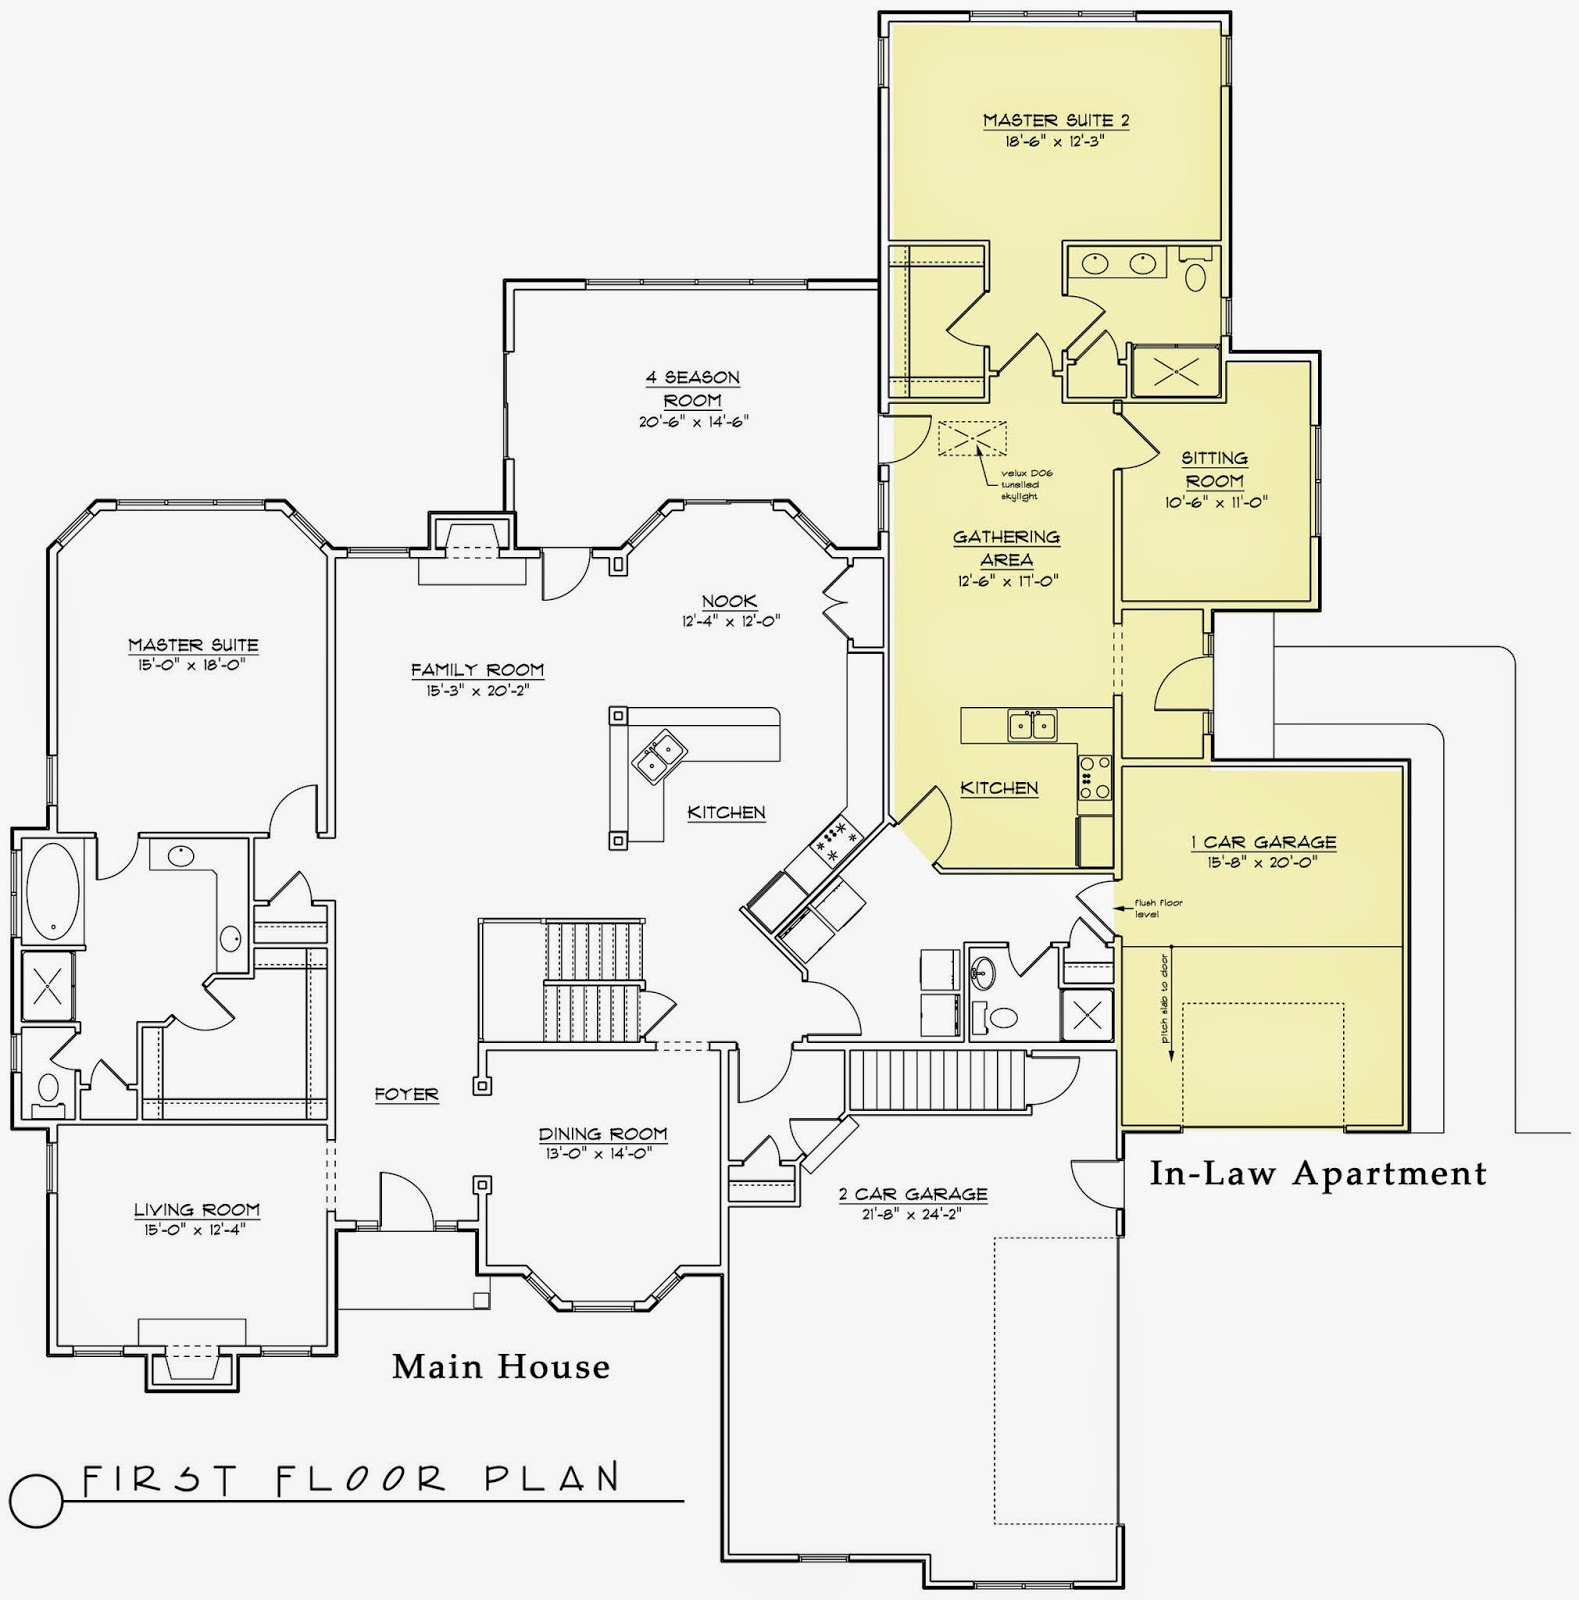 Garage Plans With 2 Bedroom Apartment Above